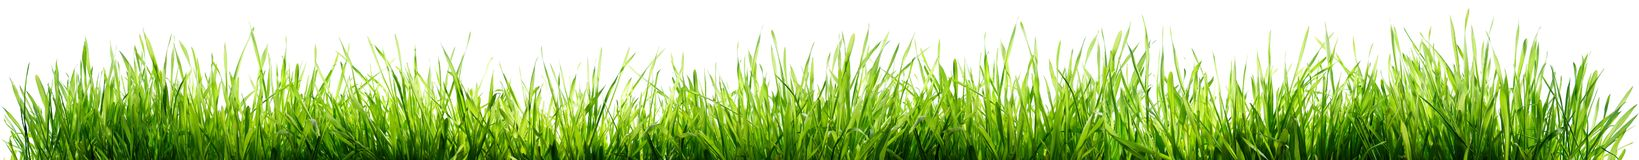 Grass Isolated On White. Spring Border stock image